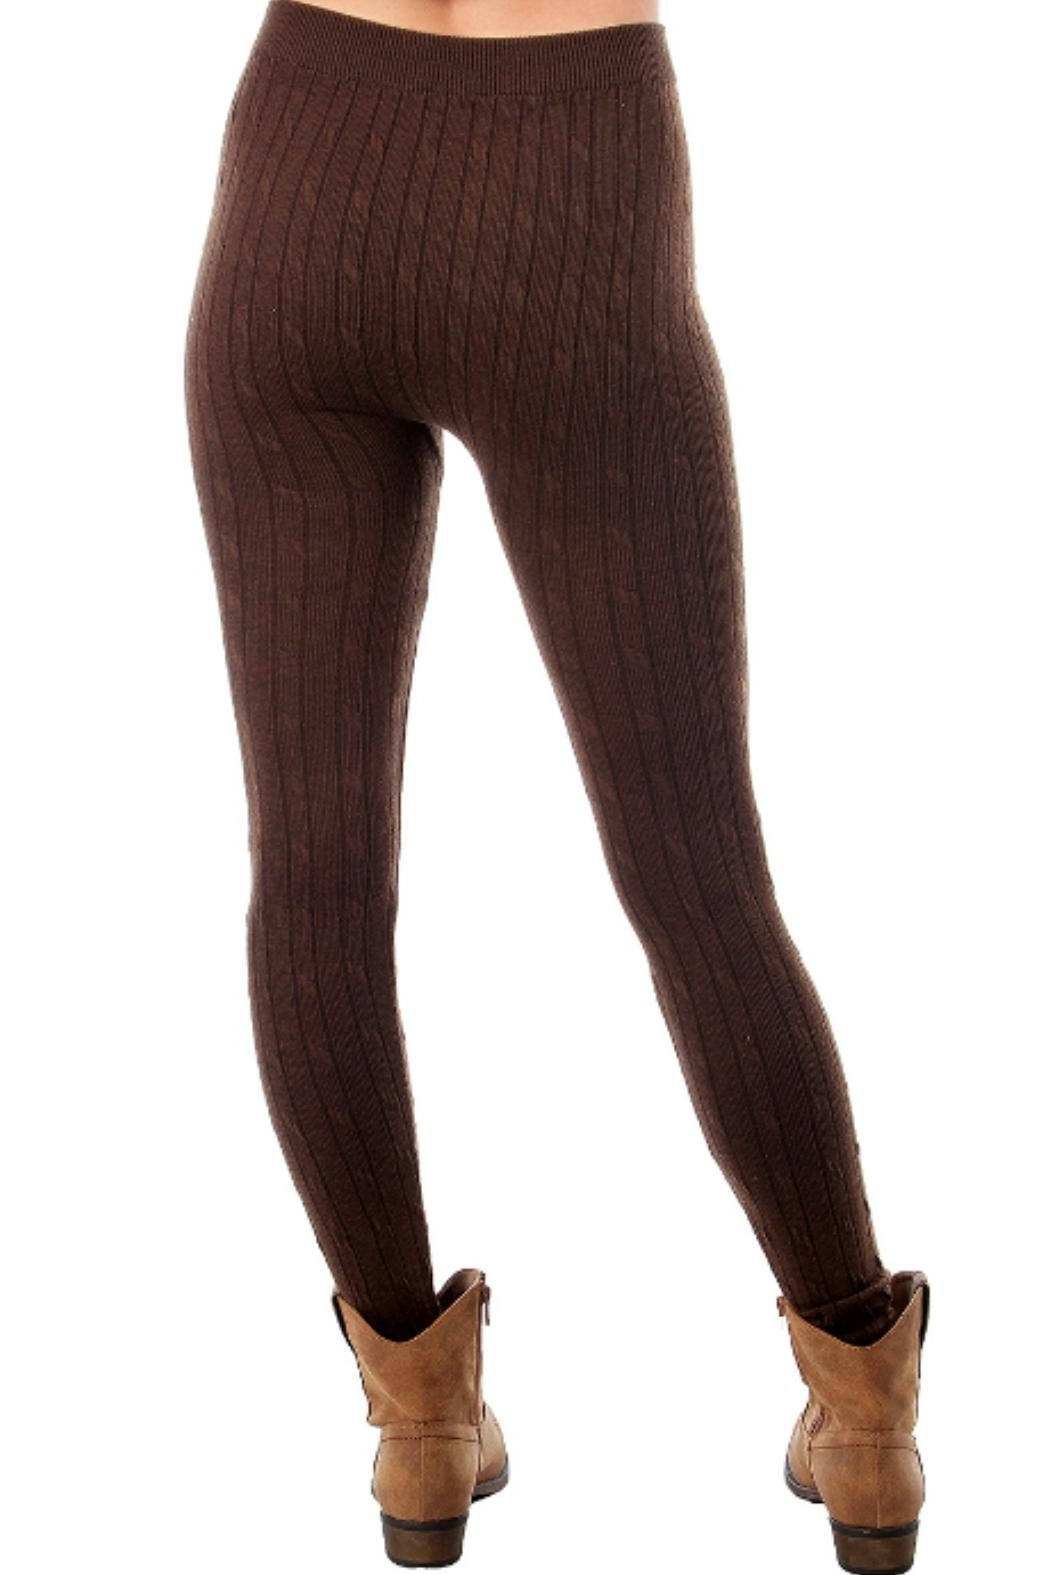 F $ F Sweater Cable Leggings - Front Full Image